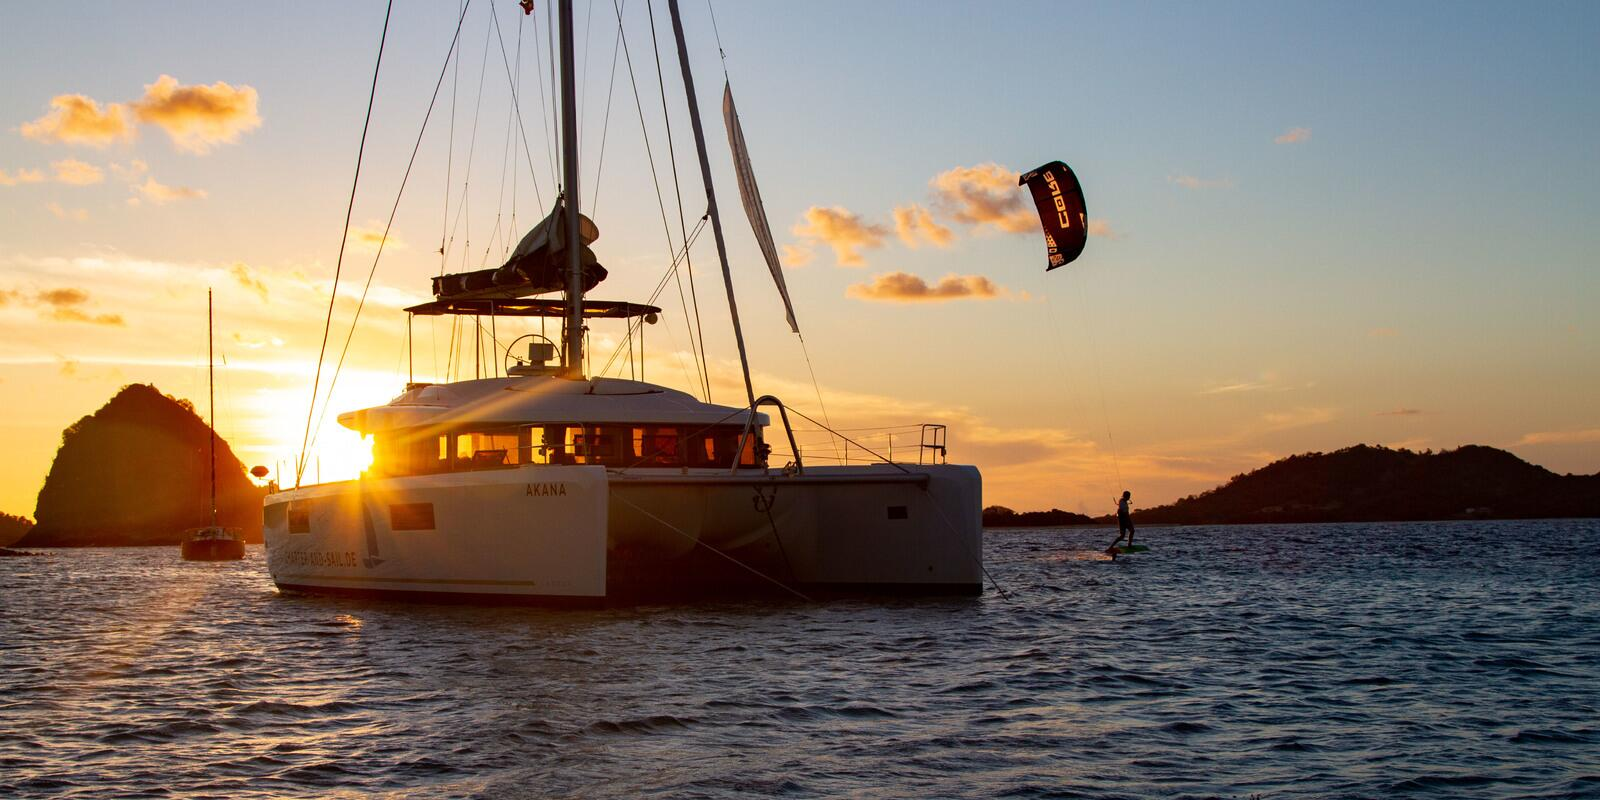 Kite & Sail Caribbean - from spot to spot with the luxurious catamaran